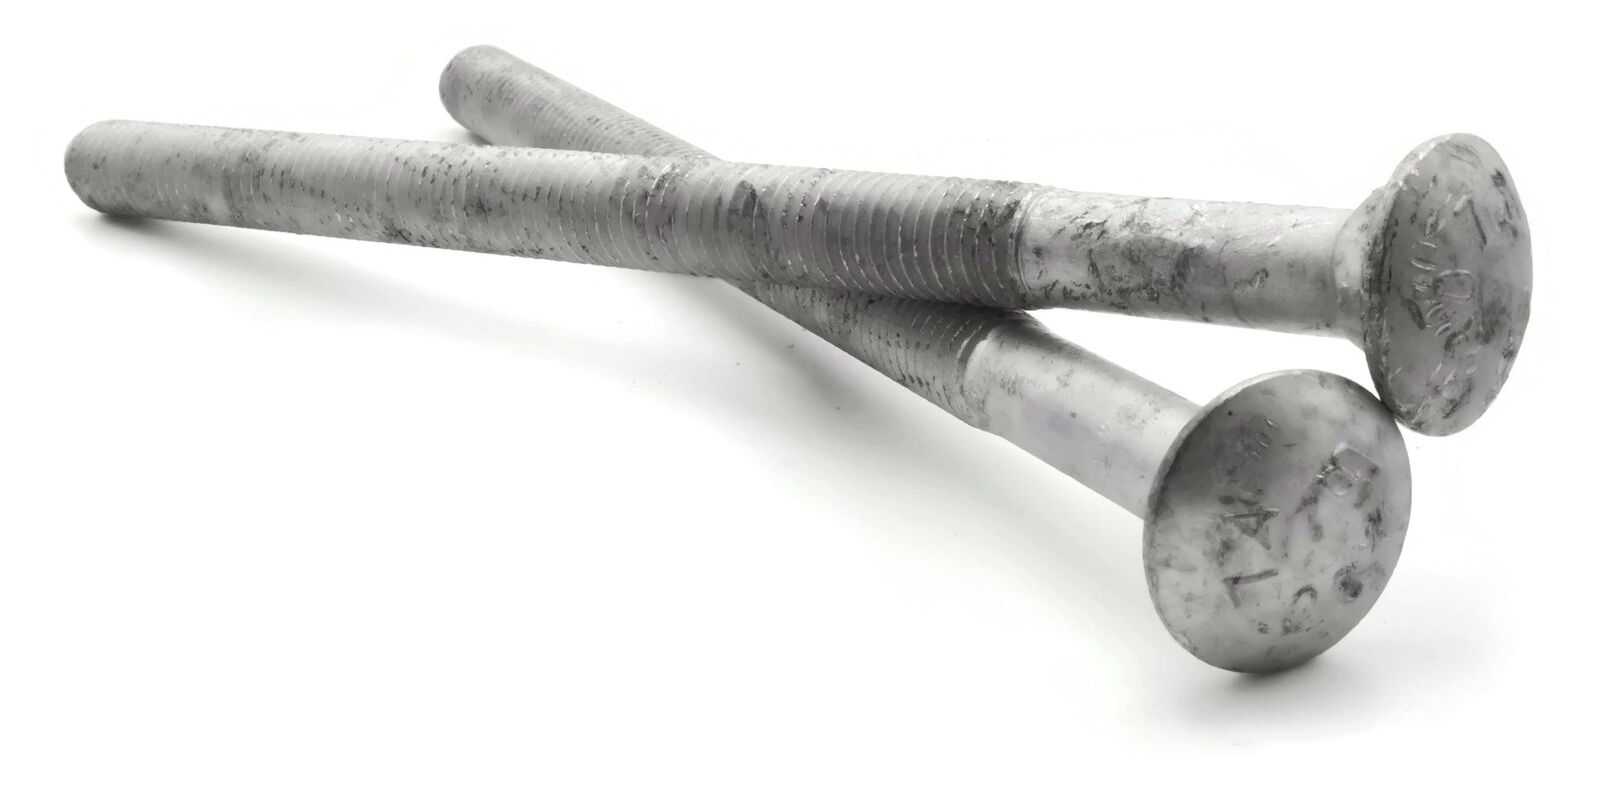 1//2-13 x 1 FT Qty-25 Carriage Bolt Hot Dipped Galvanized